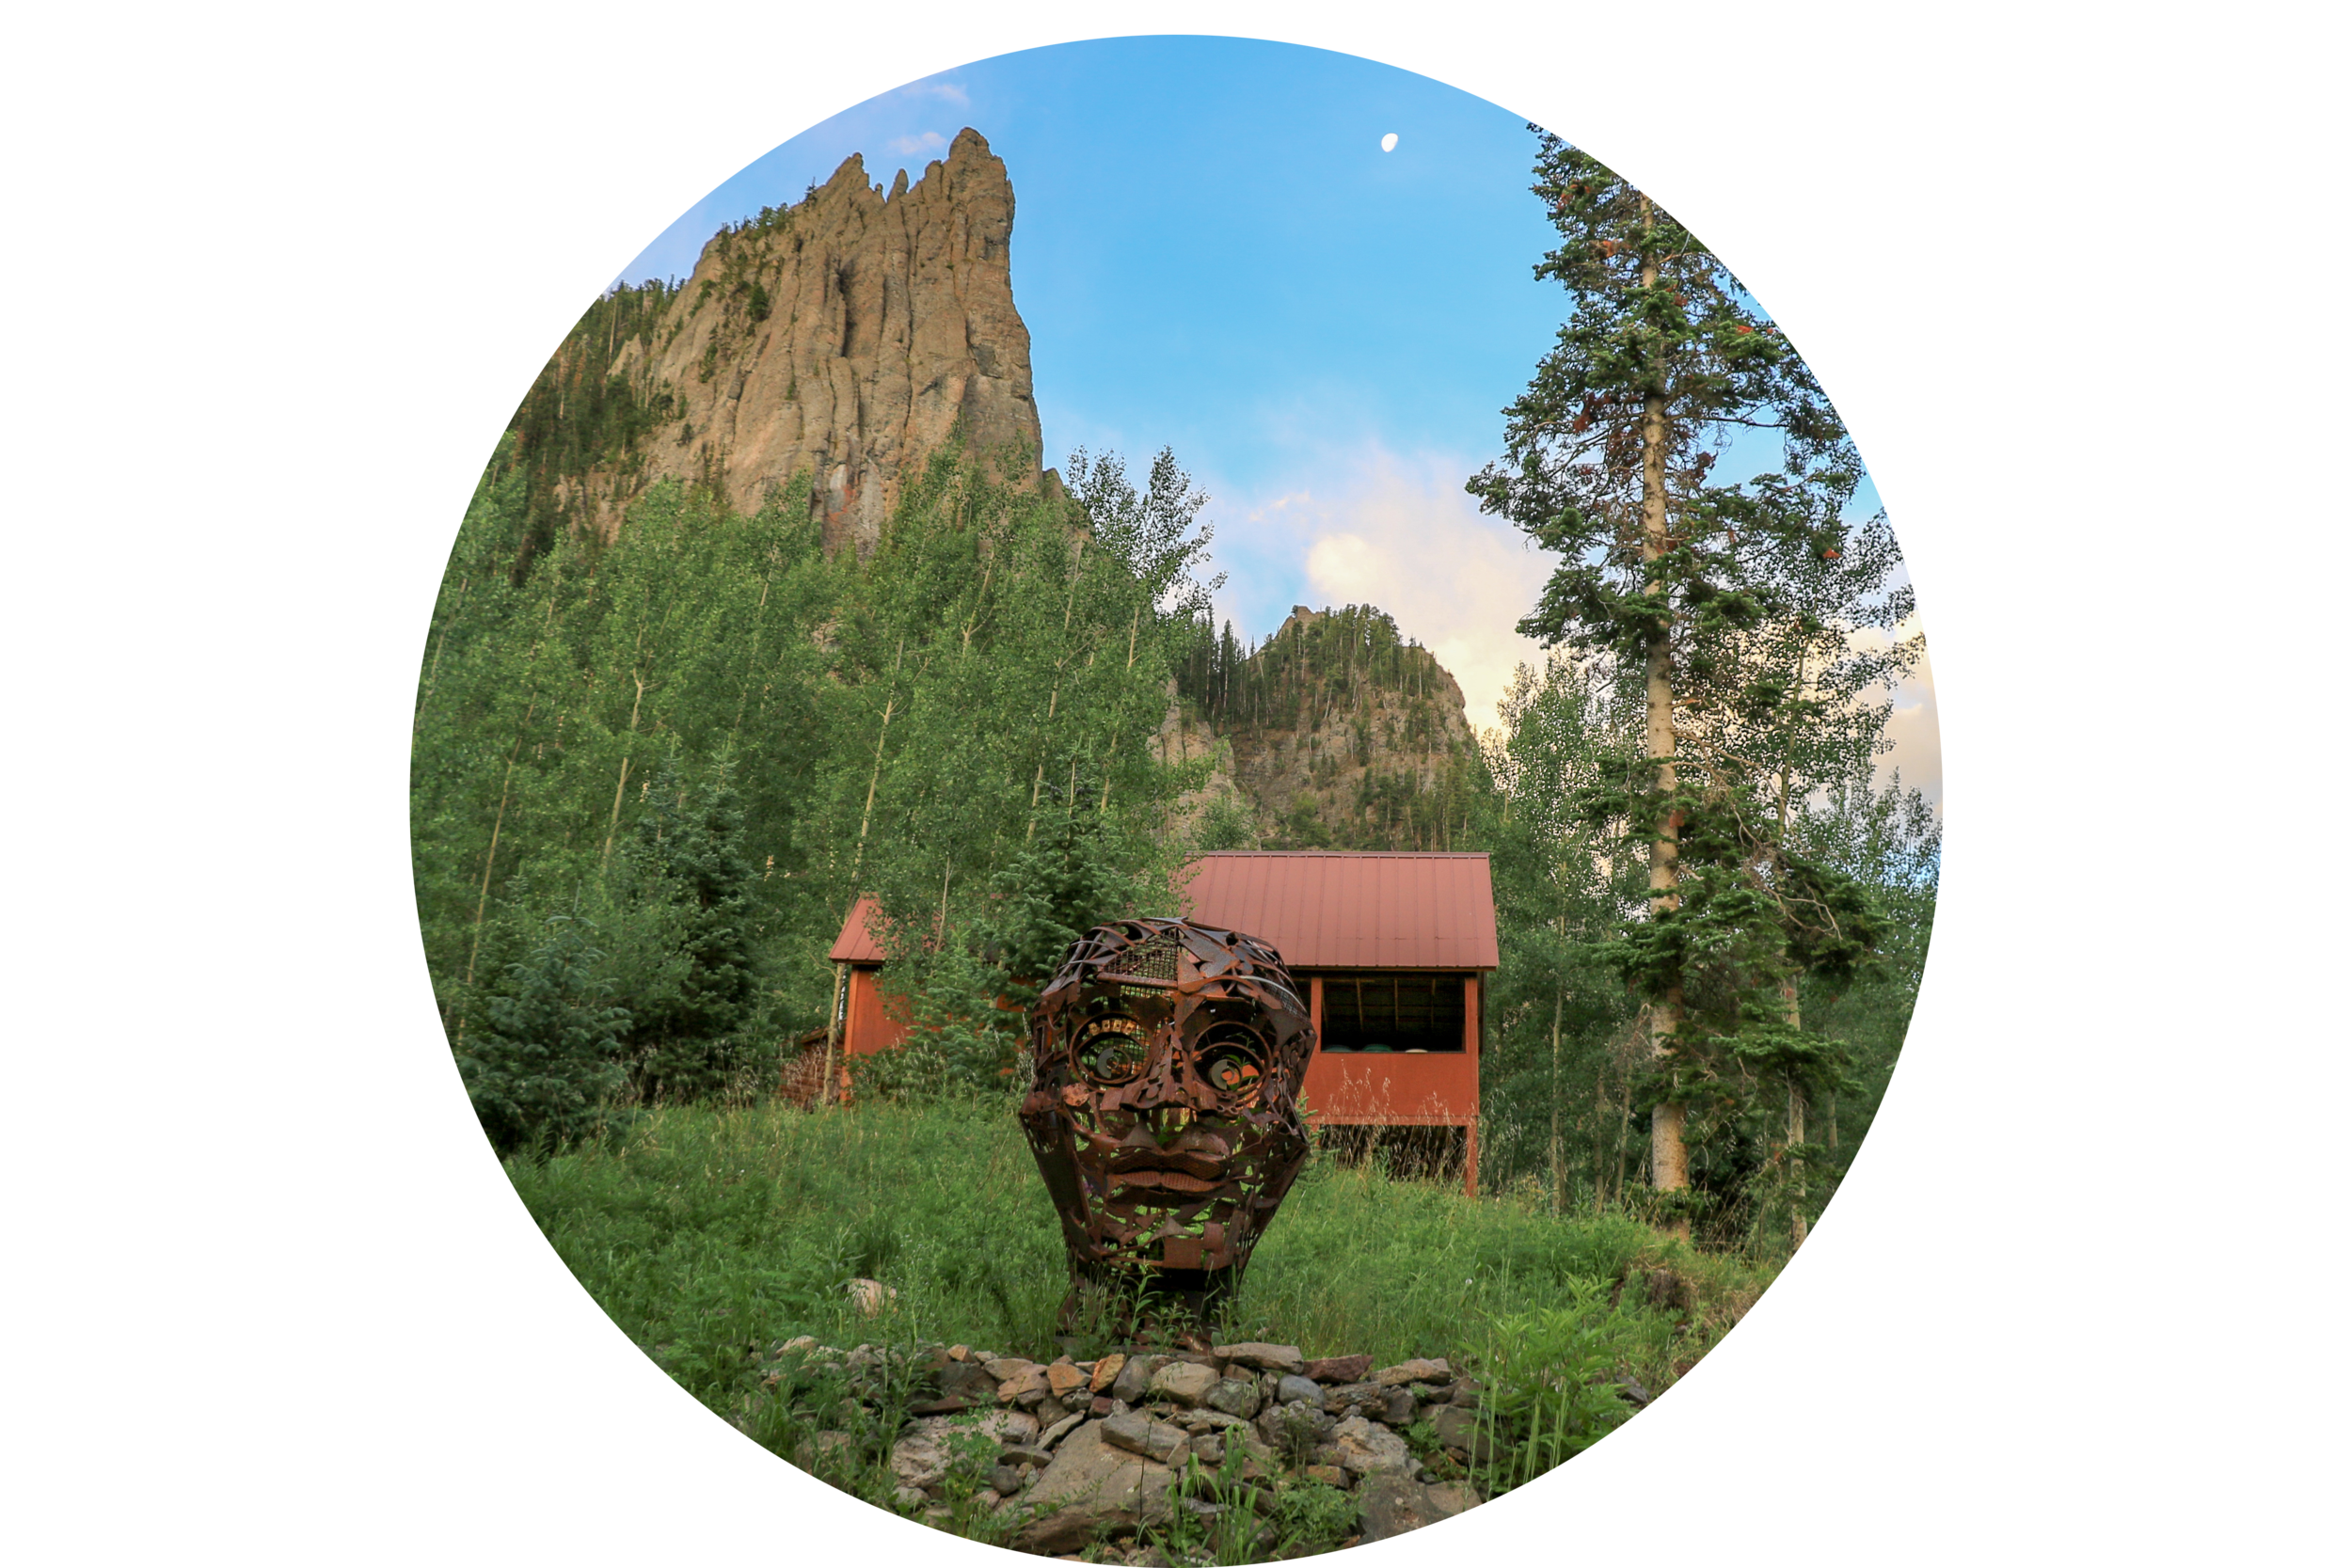 A Portrait of Hugo  is, as the name suggests, a portrait of another sculpture,  Hugo , pictured above. Hugo was acquired by a private collector in 2016 for his summer home in Ouray, Colorado. Hugo stands at 7' tall on a stone plinth surrounded by Squaw Peak, aspens & pines. In 2018, after visiting Hugo, I was inspired to sculpt a commissioned portrait of him in his alpine setting in metal for my patron's winter home in Arizona!